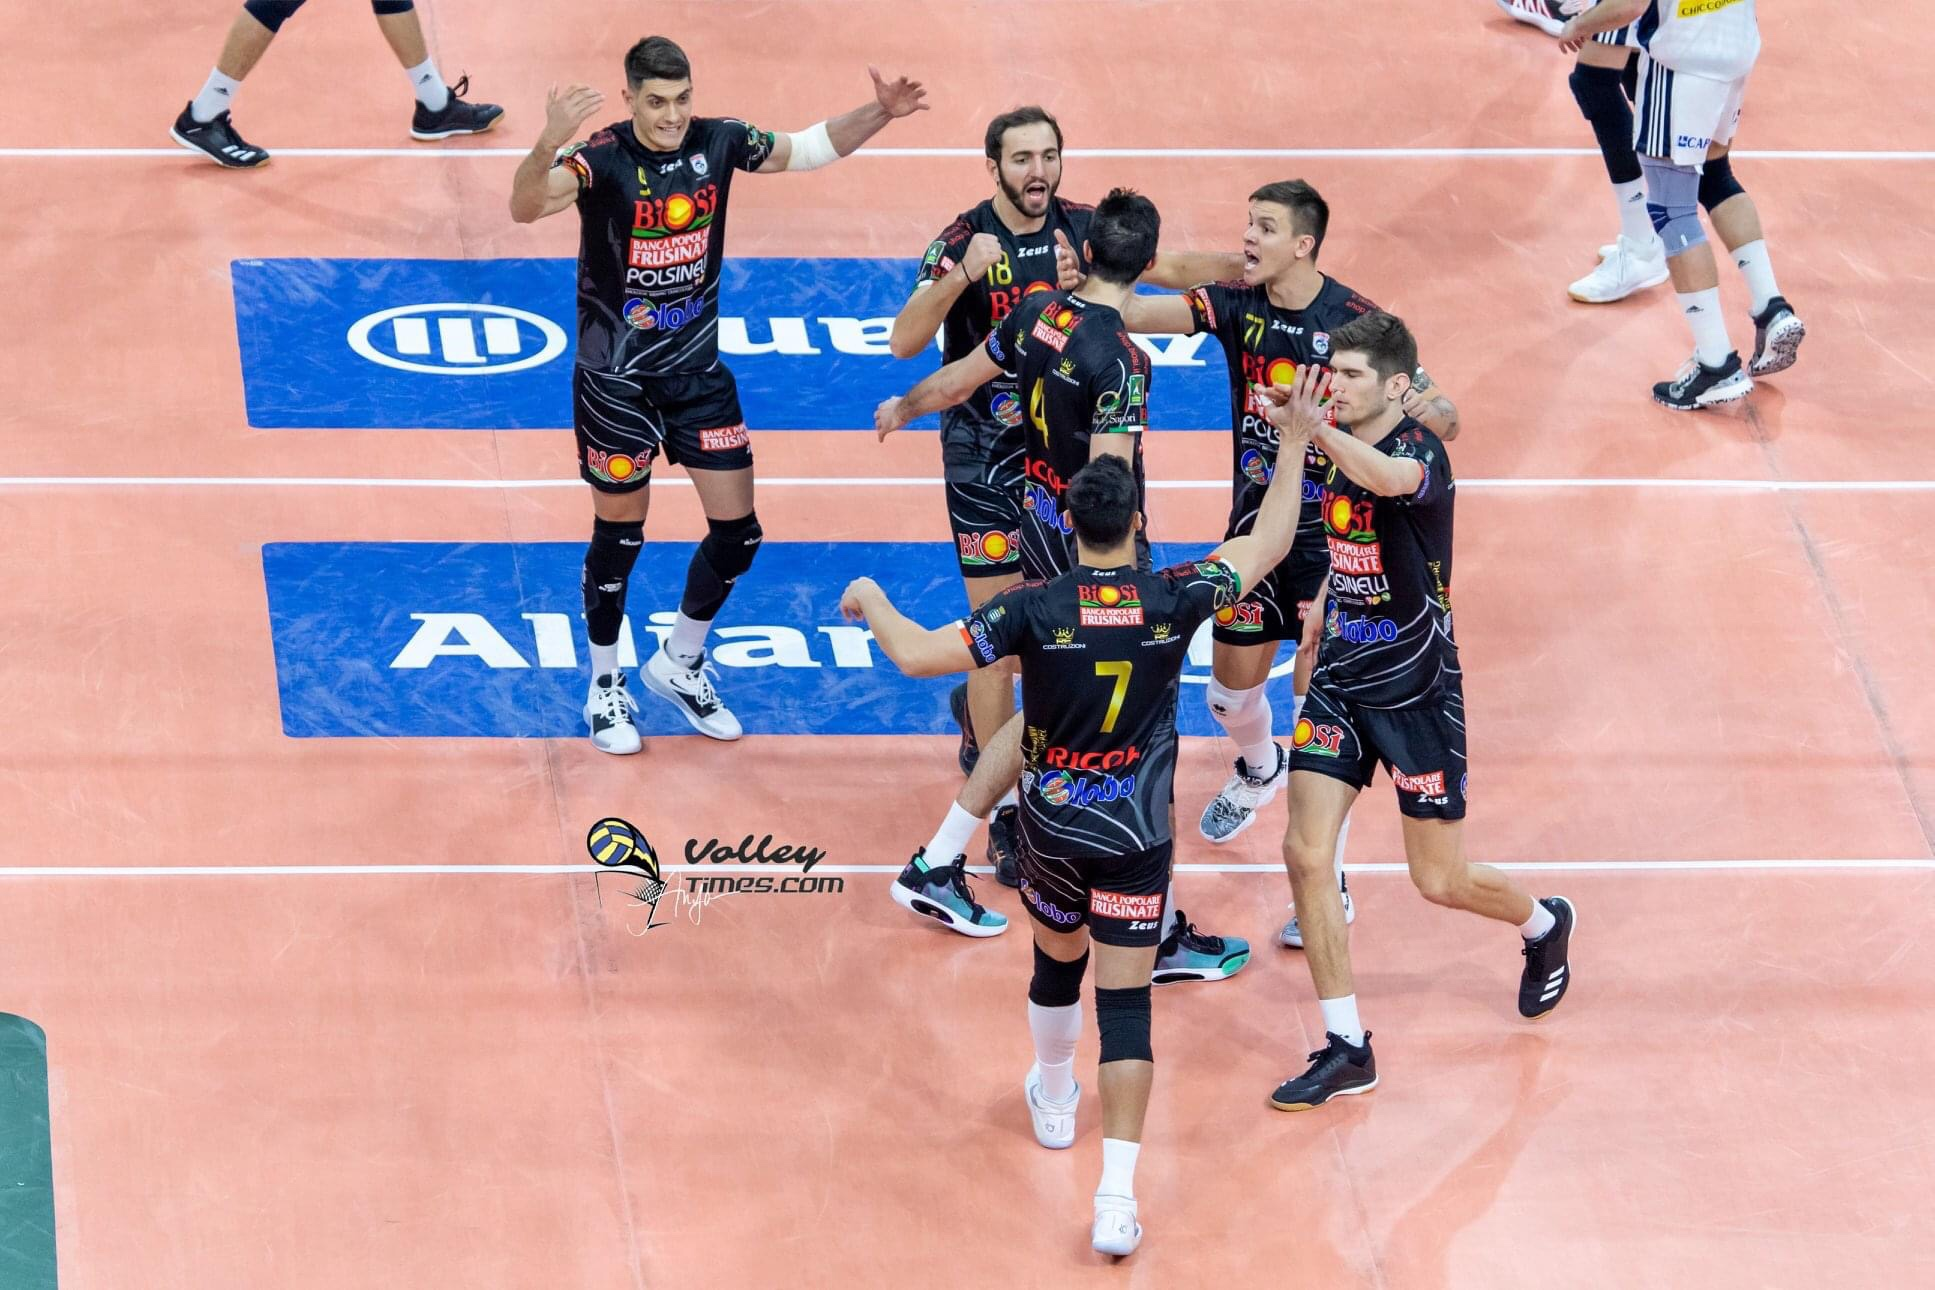 Italy: Sora renounces the Superlega